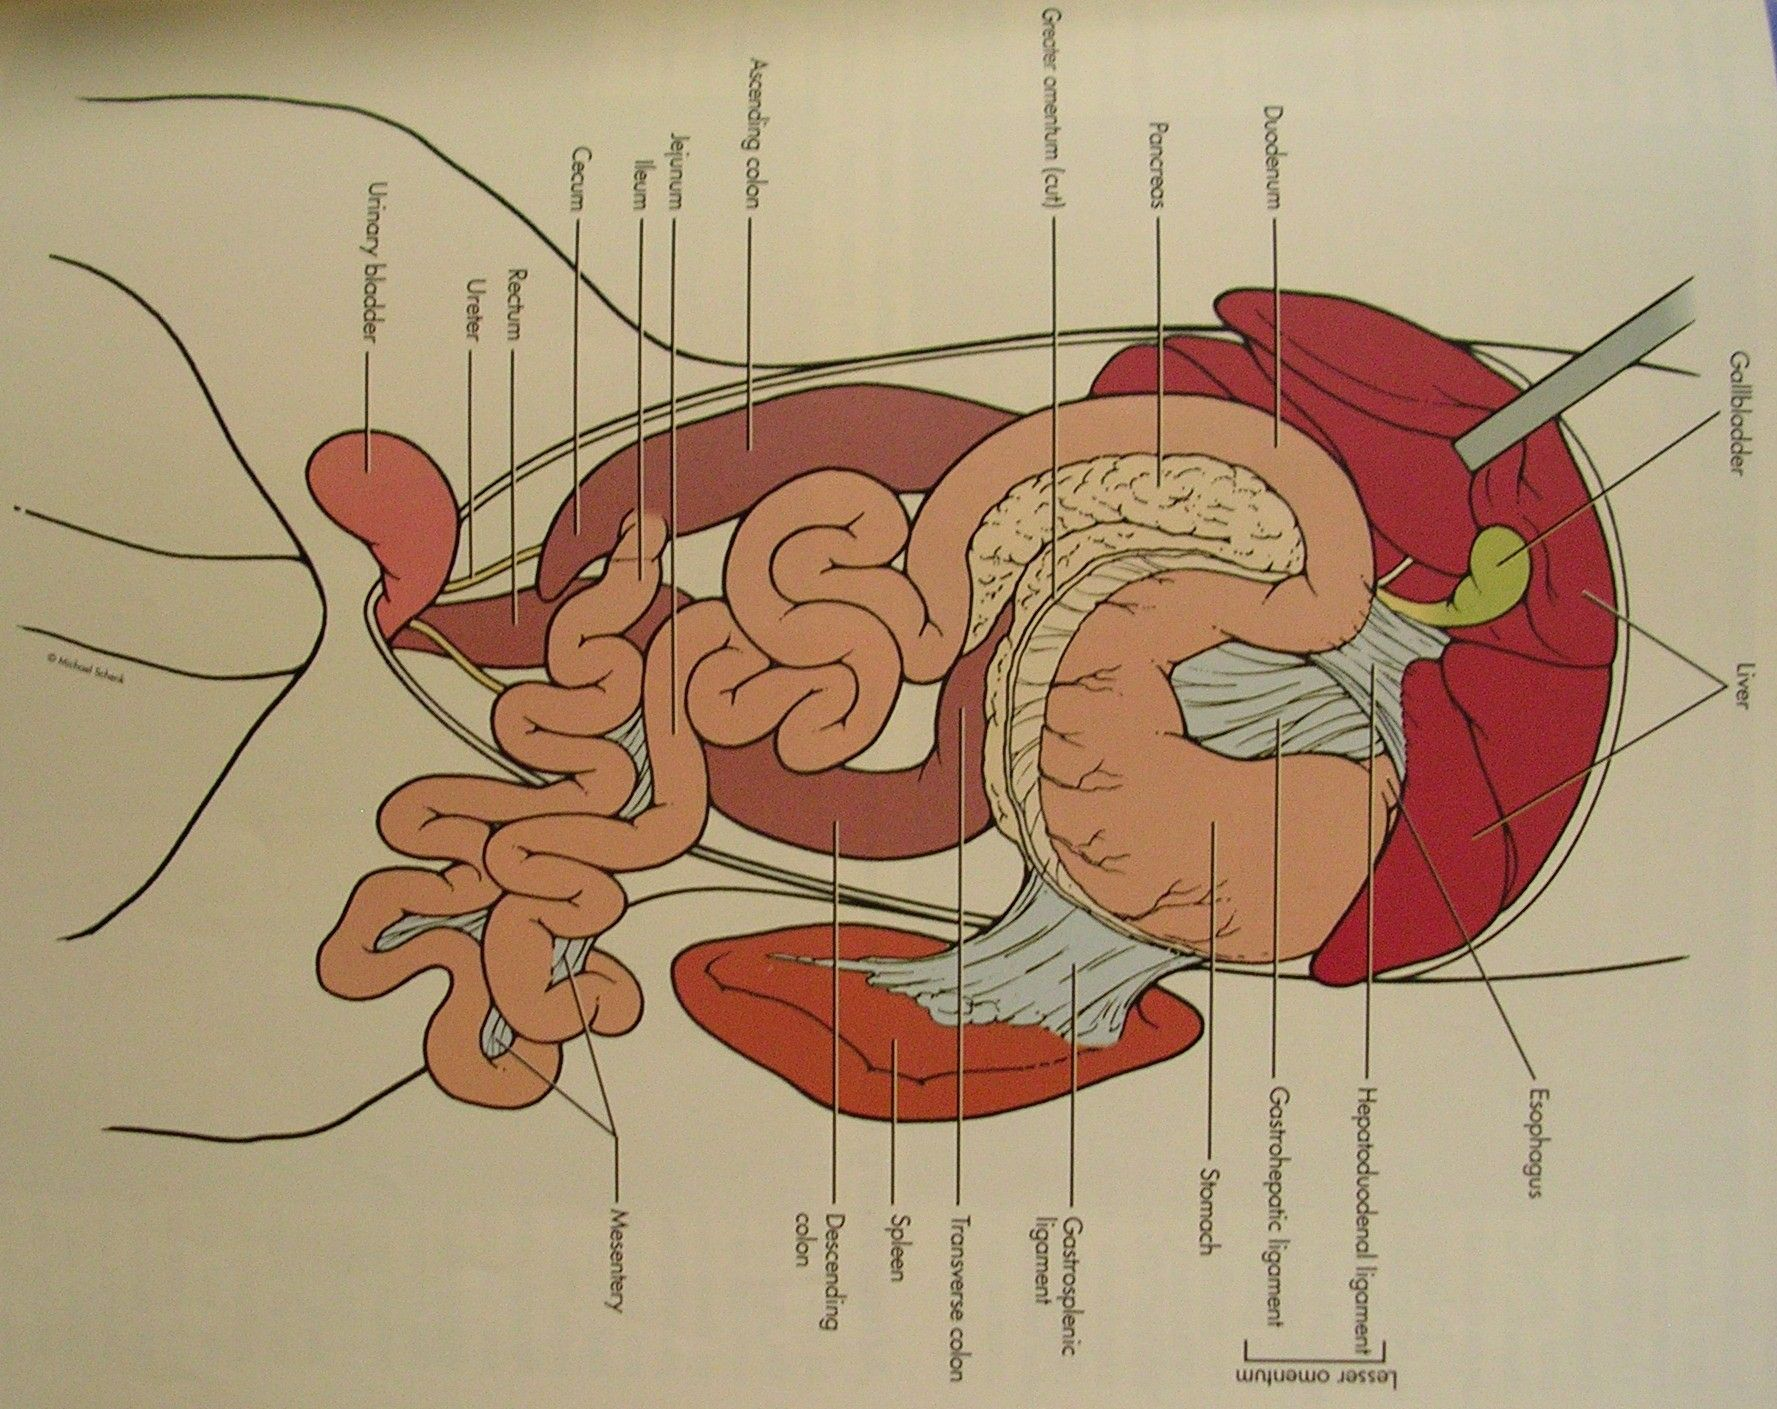 intestines is the lysosome of the cat. it breaks down foods, and ...